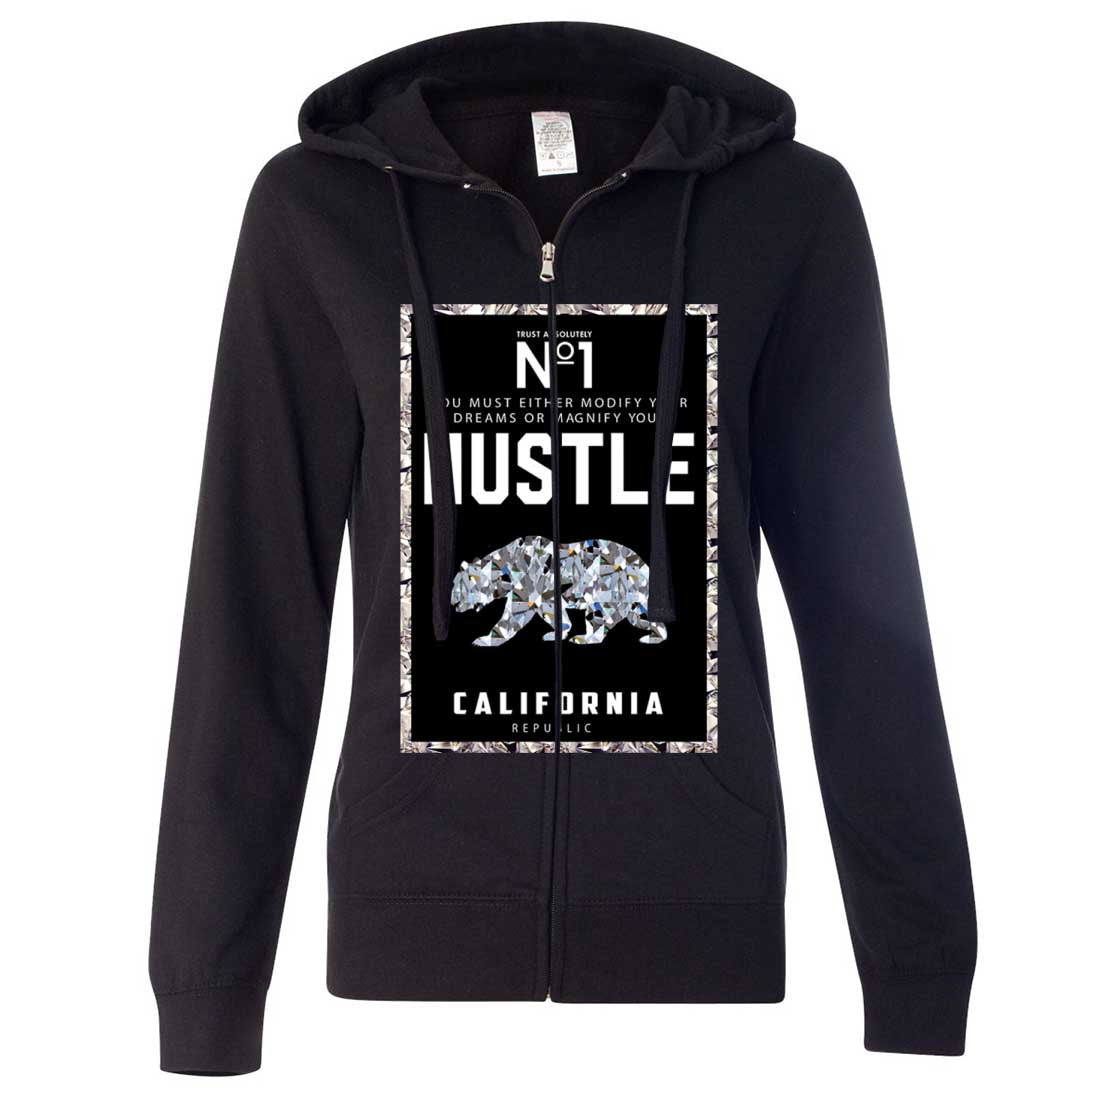 California Republic No. 1 Diamond Hustle Ladies Zip-Up Hoodie